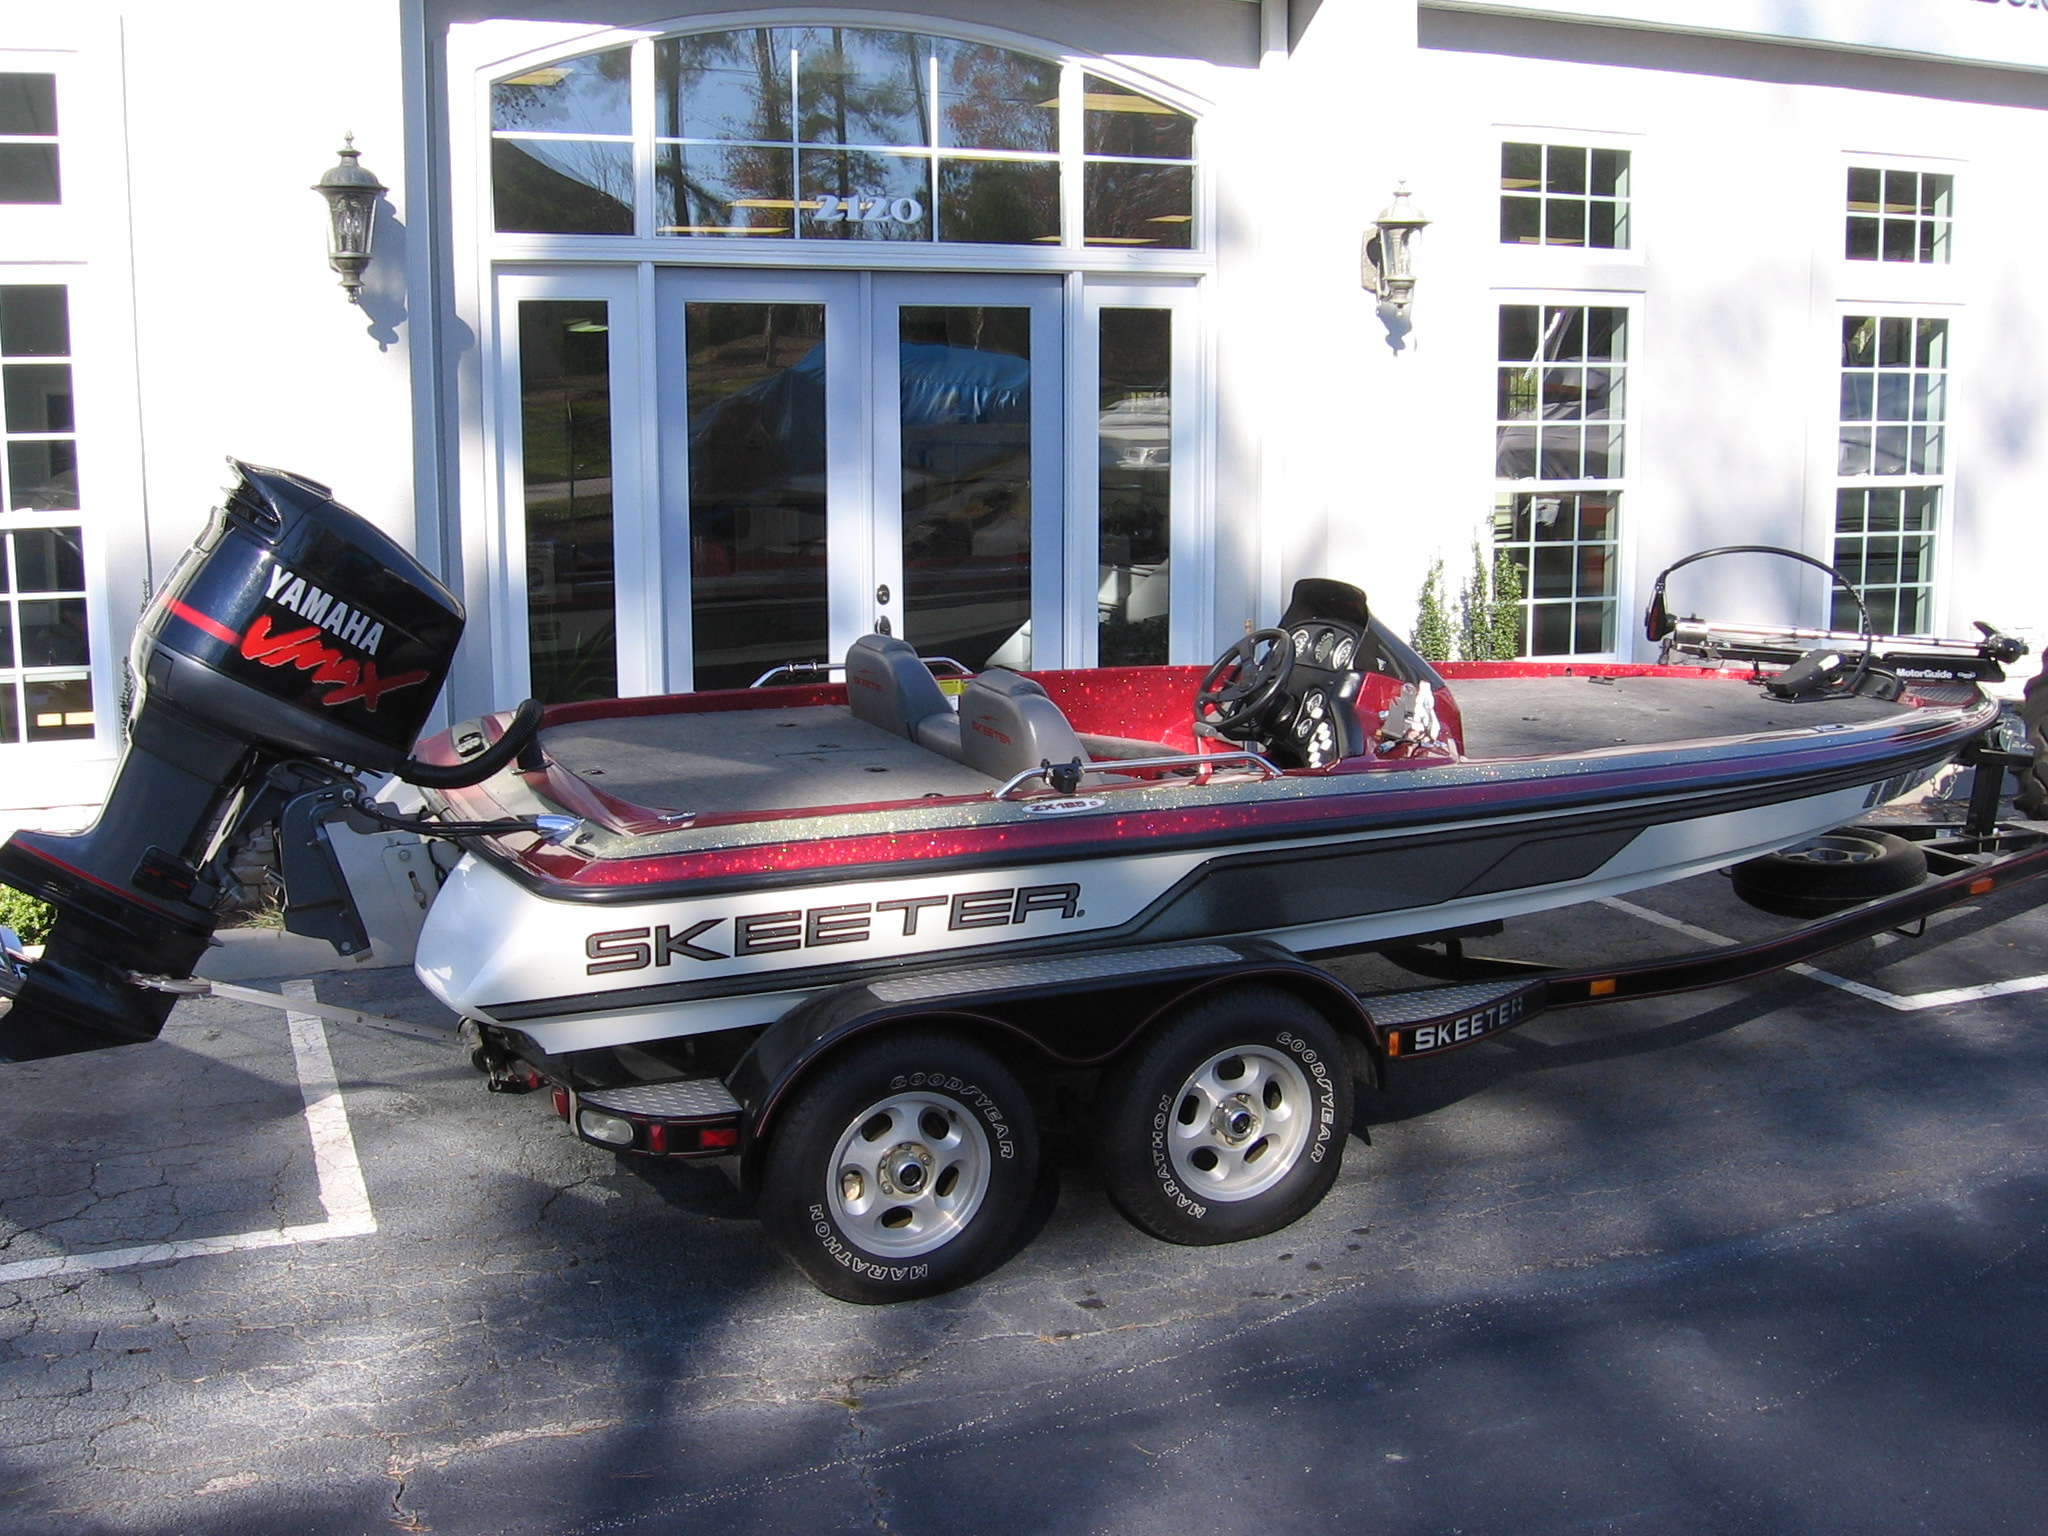 1999 Skeeter Zx190c Wiring Diagram Online Schematics Lancer Sailboat 80 Boats 2011 Zx 200 Bass Boat 200hp Yamaha Basic For Dash